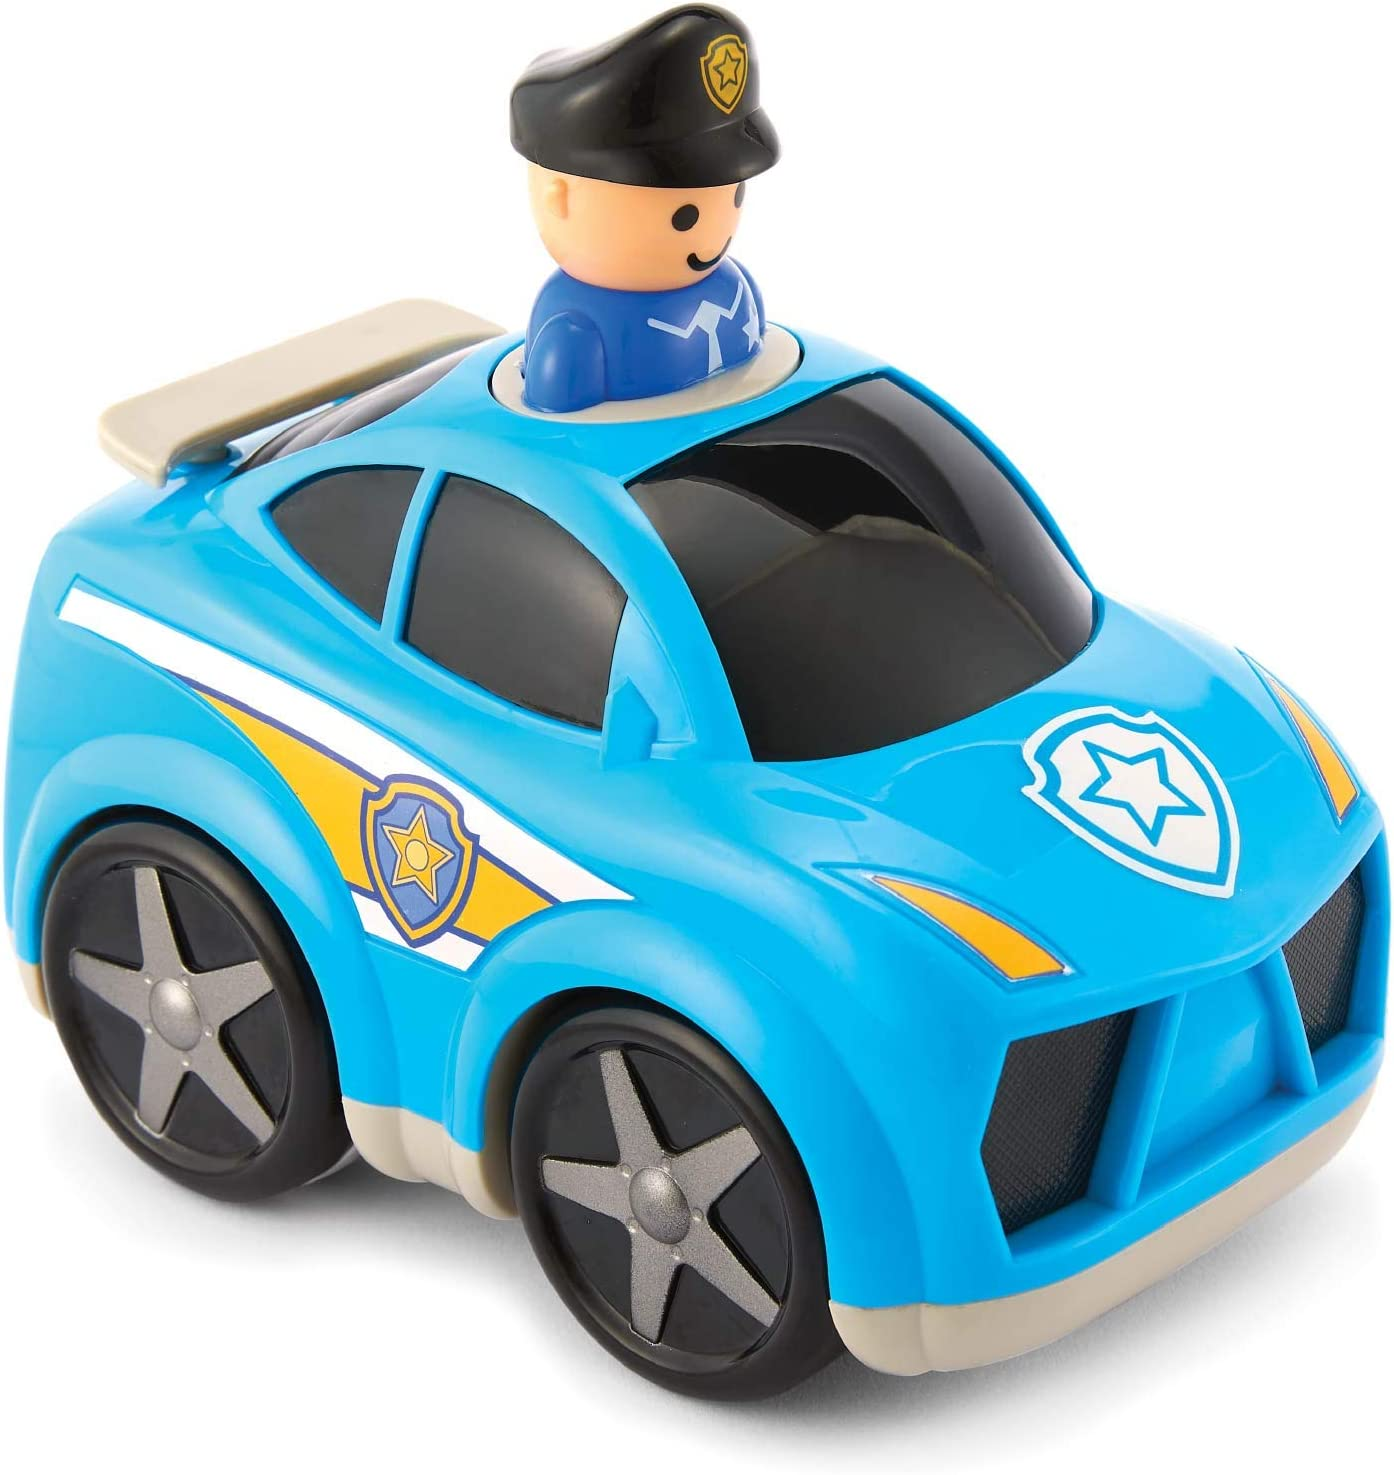 All stores are sold Kidoozie Press 'n Zoom Police Car Beauty products - Activity Developmental